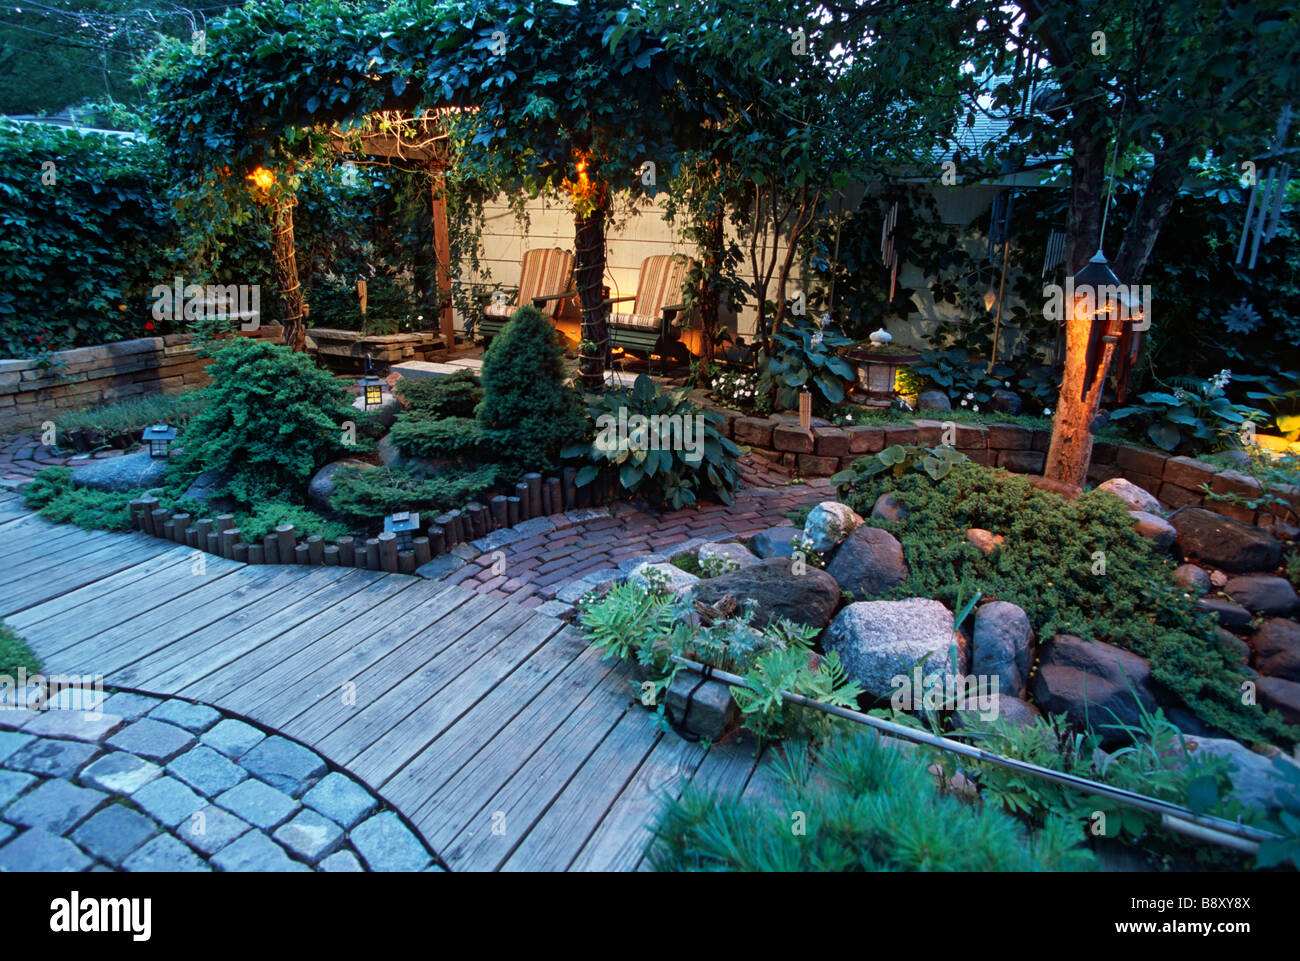 japanese outdoor lighting patio japaneseinspired garden in minnesota includes outdoor seating area with lights for evening use summer